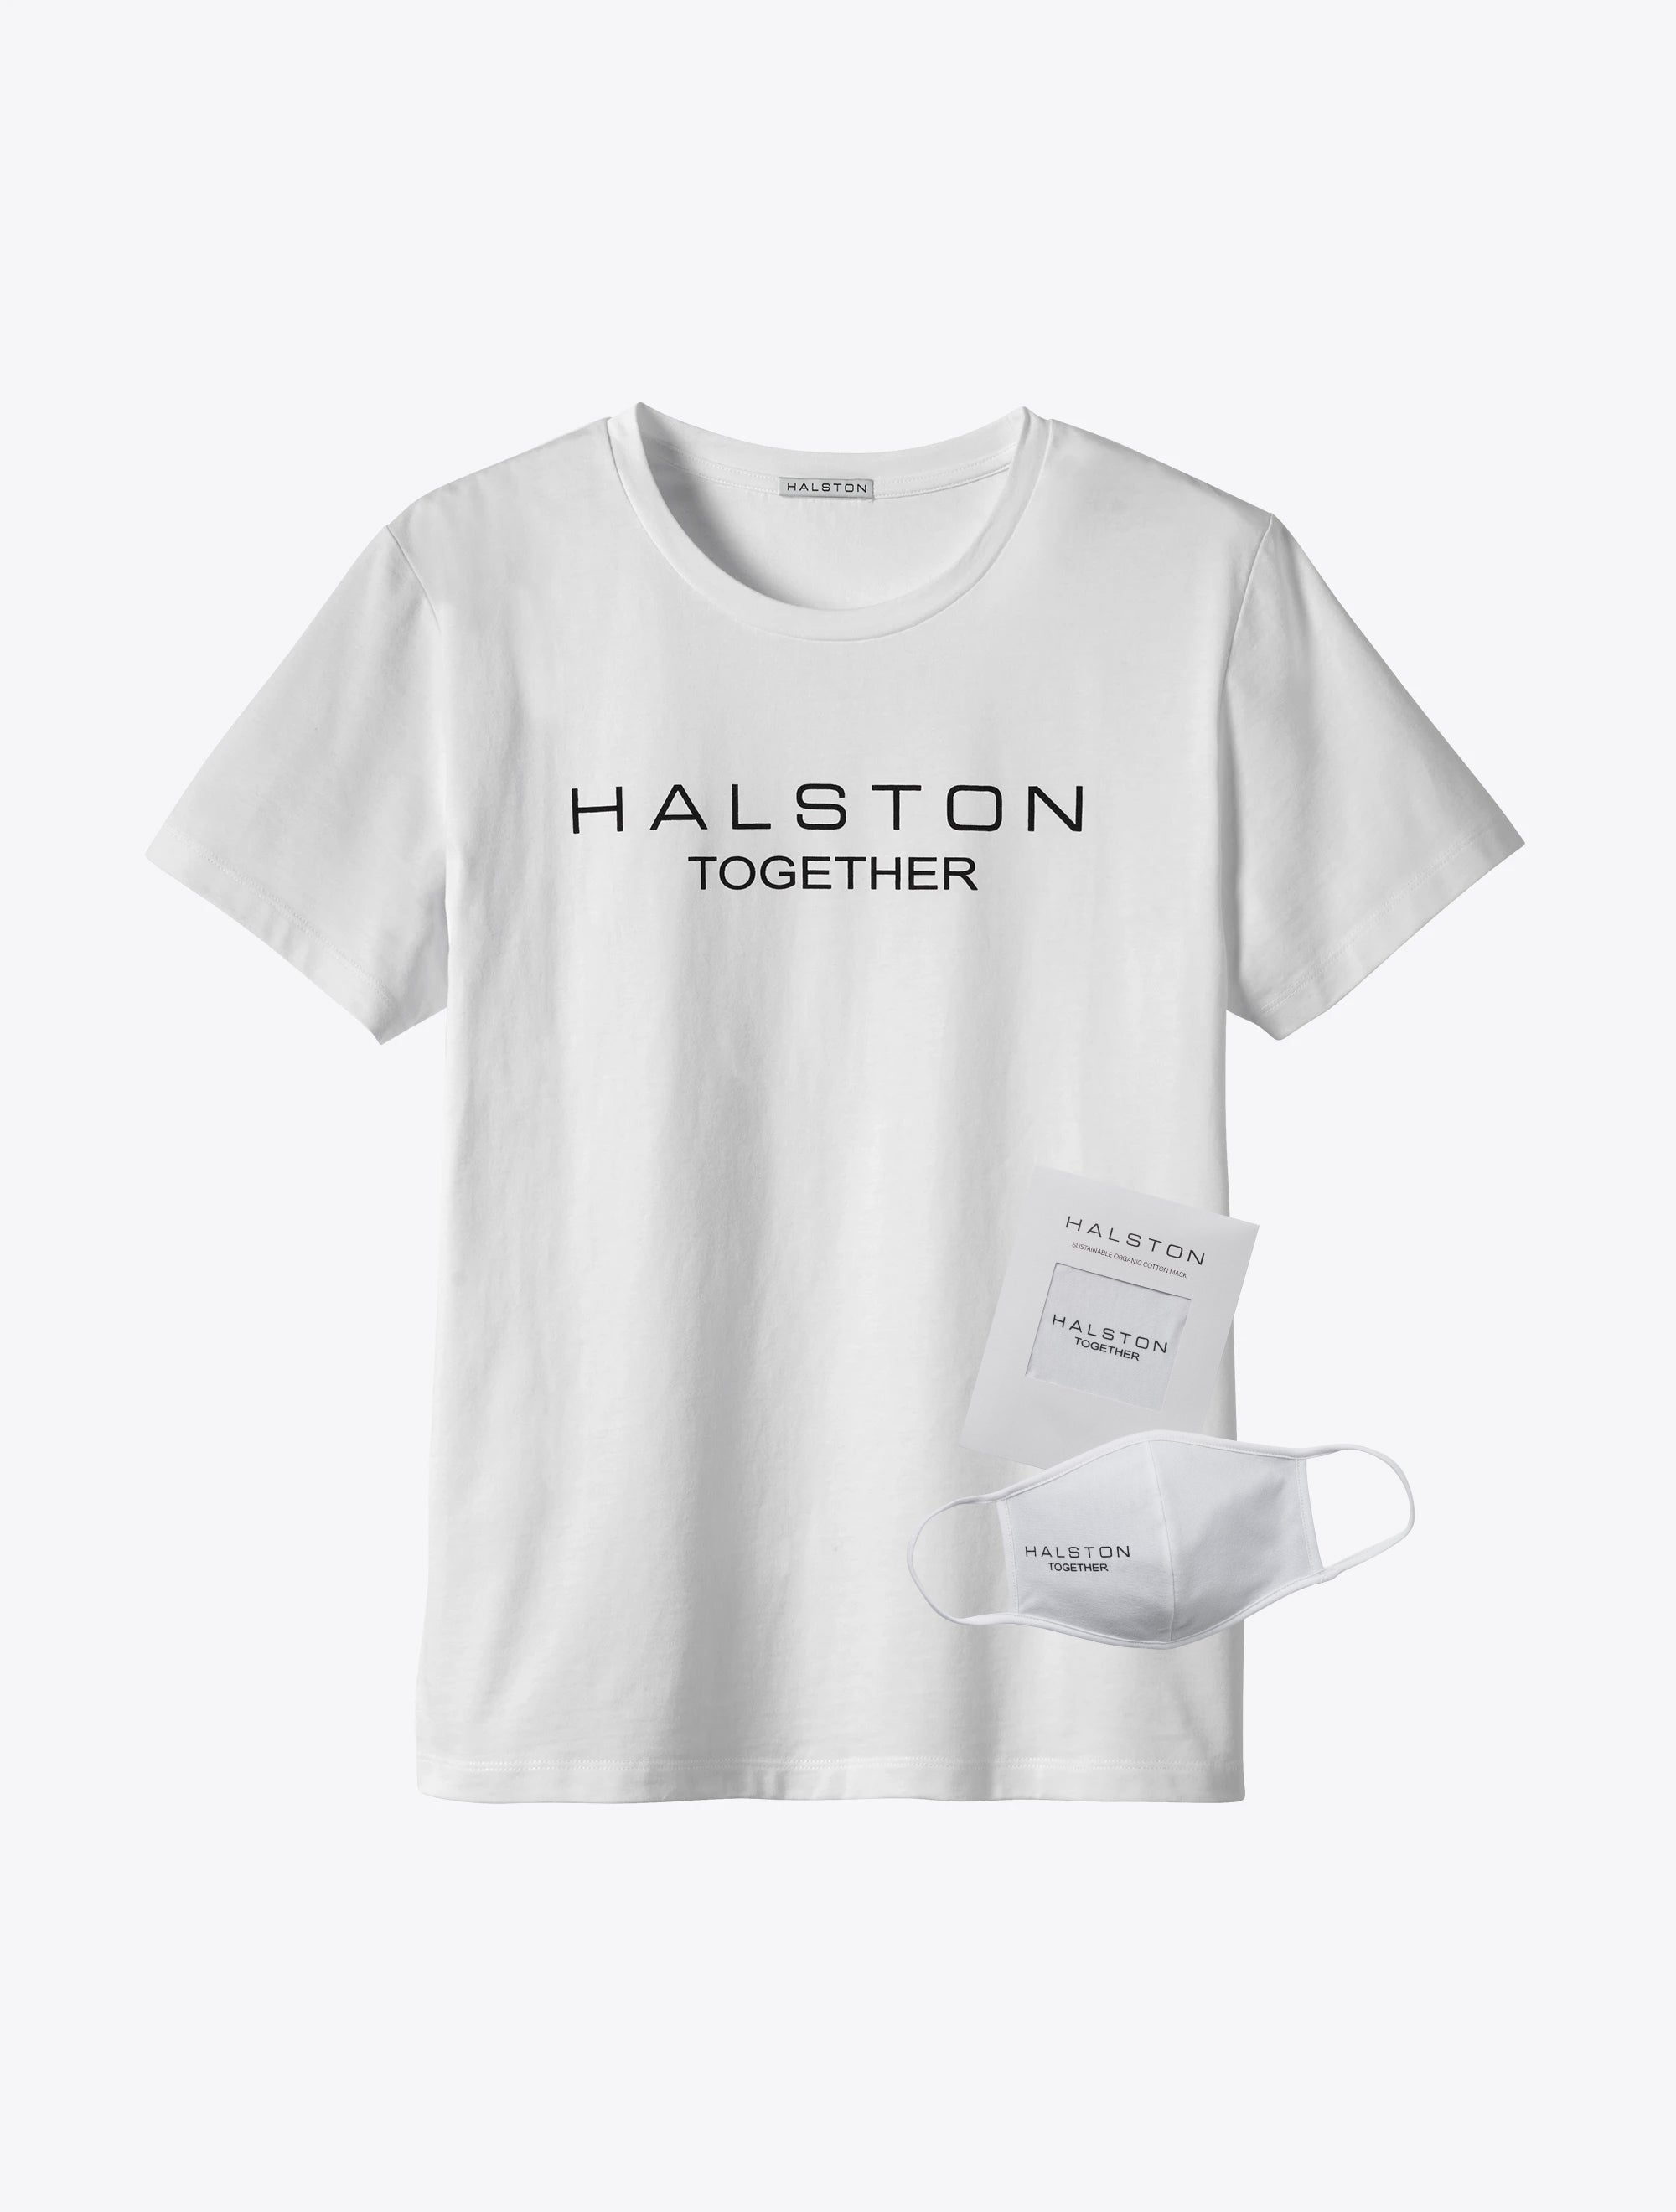 Halston Together Organic Cotton Crew Neck - White